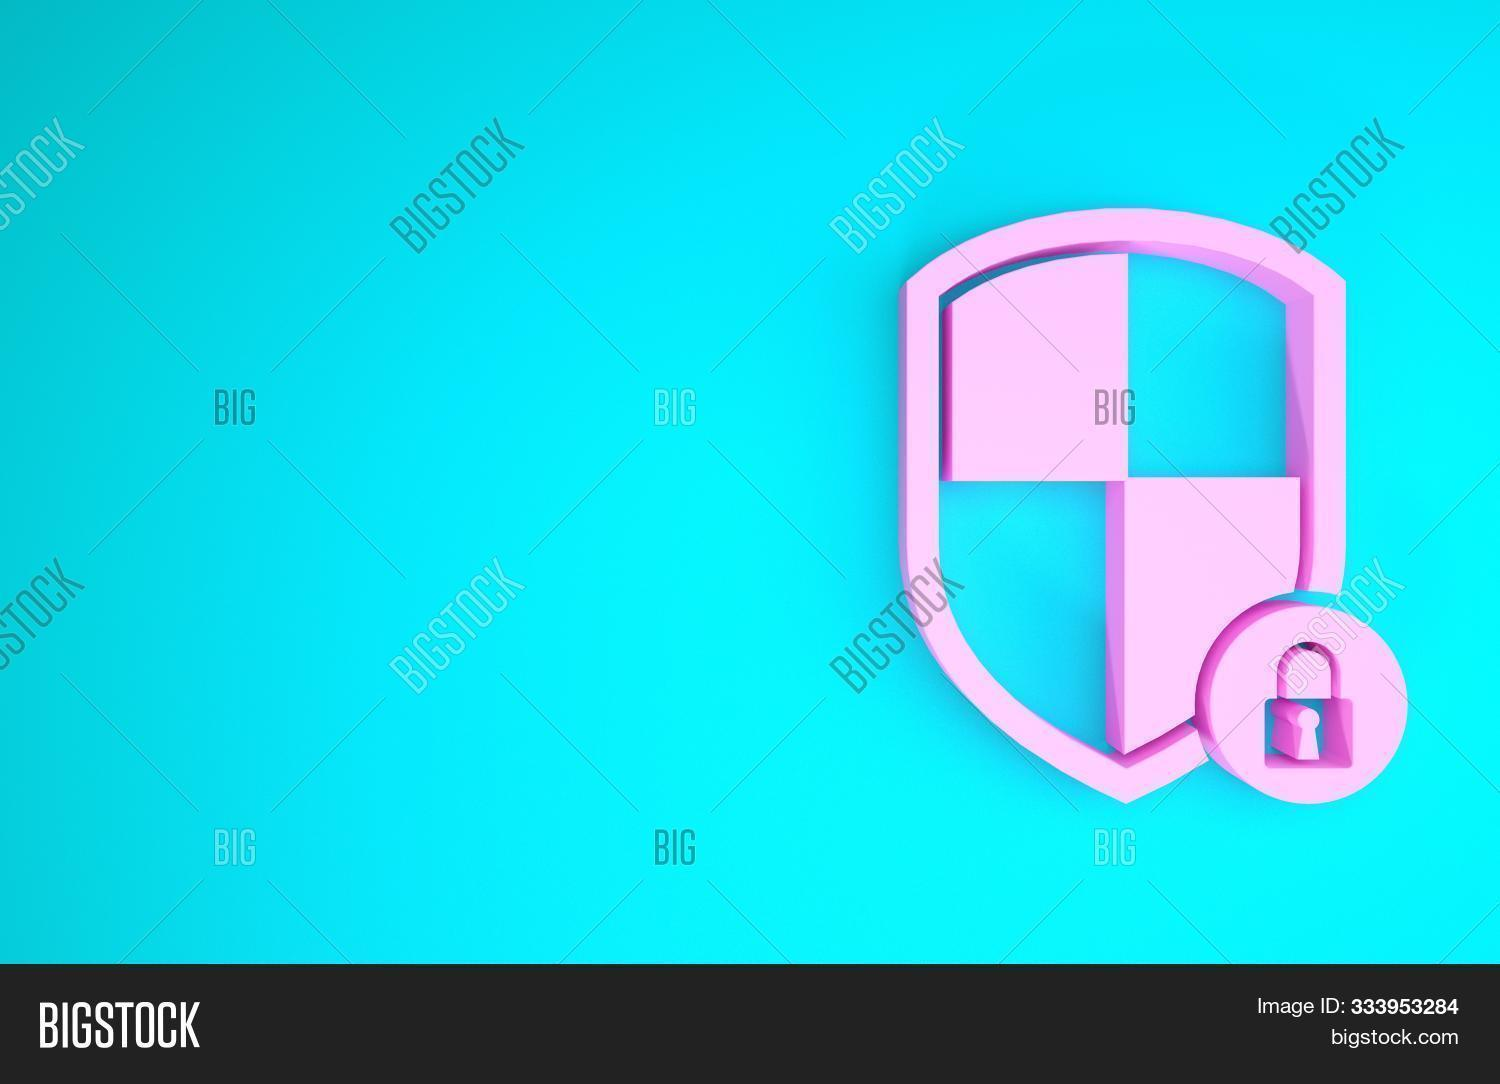 3D,access,anti,antivirus,background,badge,blue,button,color,colorful,computer,concept,design,element,emblem,firewall,flat,graphic,guard,icon,illustration,internet,isolated,key,lock,minimal,minimalism,modern,network,padlock,password,pink,privacy,protect,protection,render,rendering,safe,safety,secure,security,shape,shield,sign,simple,site,symbol,virus,web,website